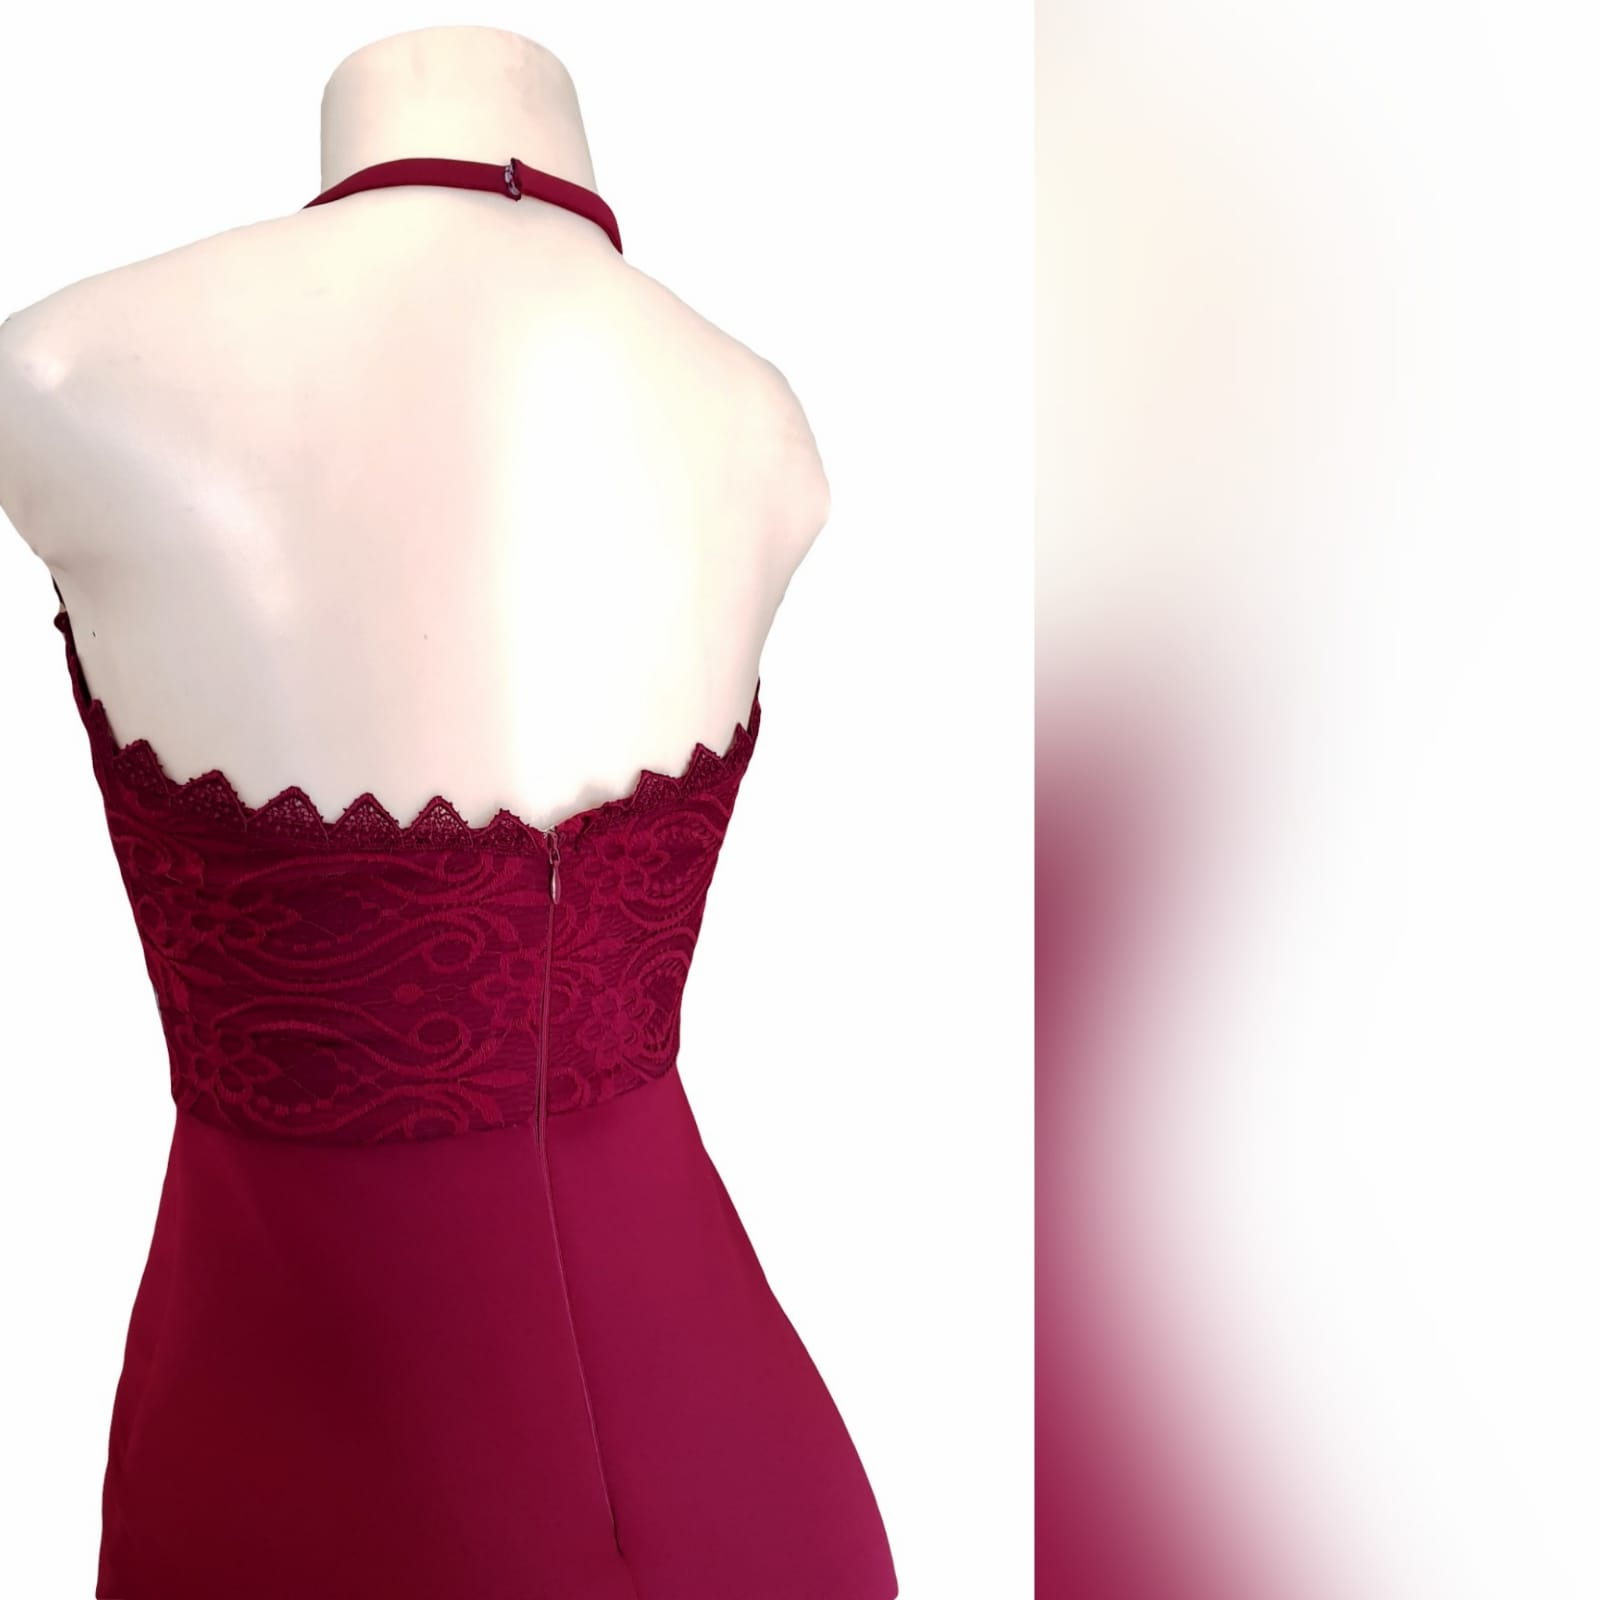 Burgundy soft mermaid gorgeous evening dress 12 this gorgeous evening dress was created for my client in south africa to celebrate her special occasion. A burgundy soft mermaid prom dress with a lace bodice, a sheer lace neckline and dramatic train.